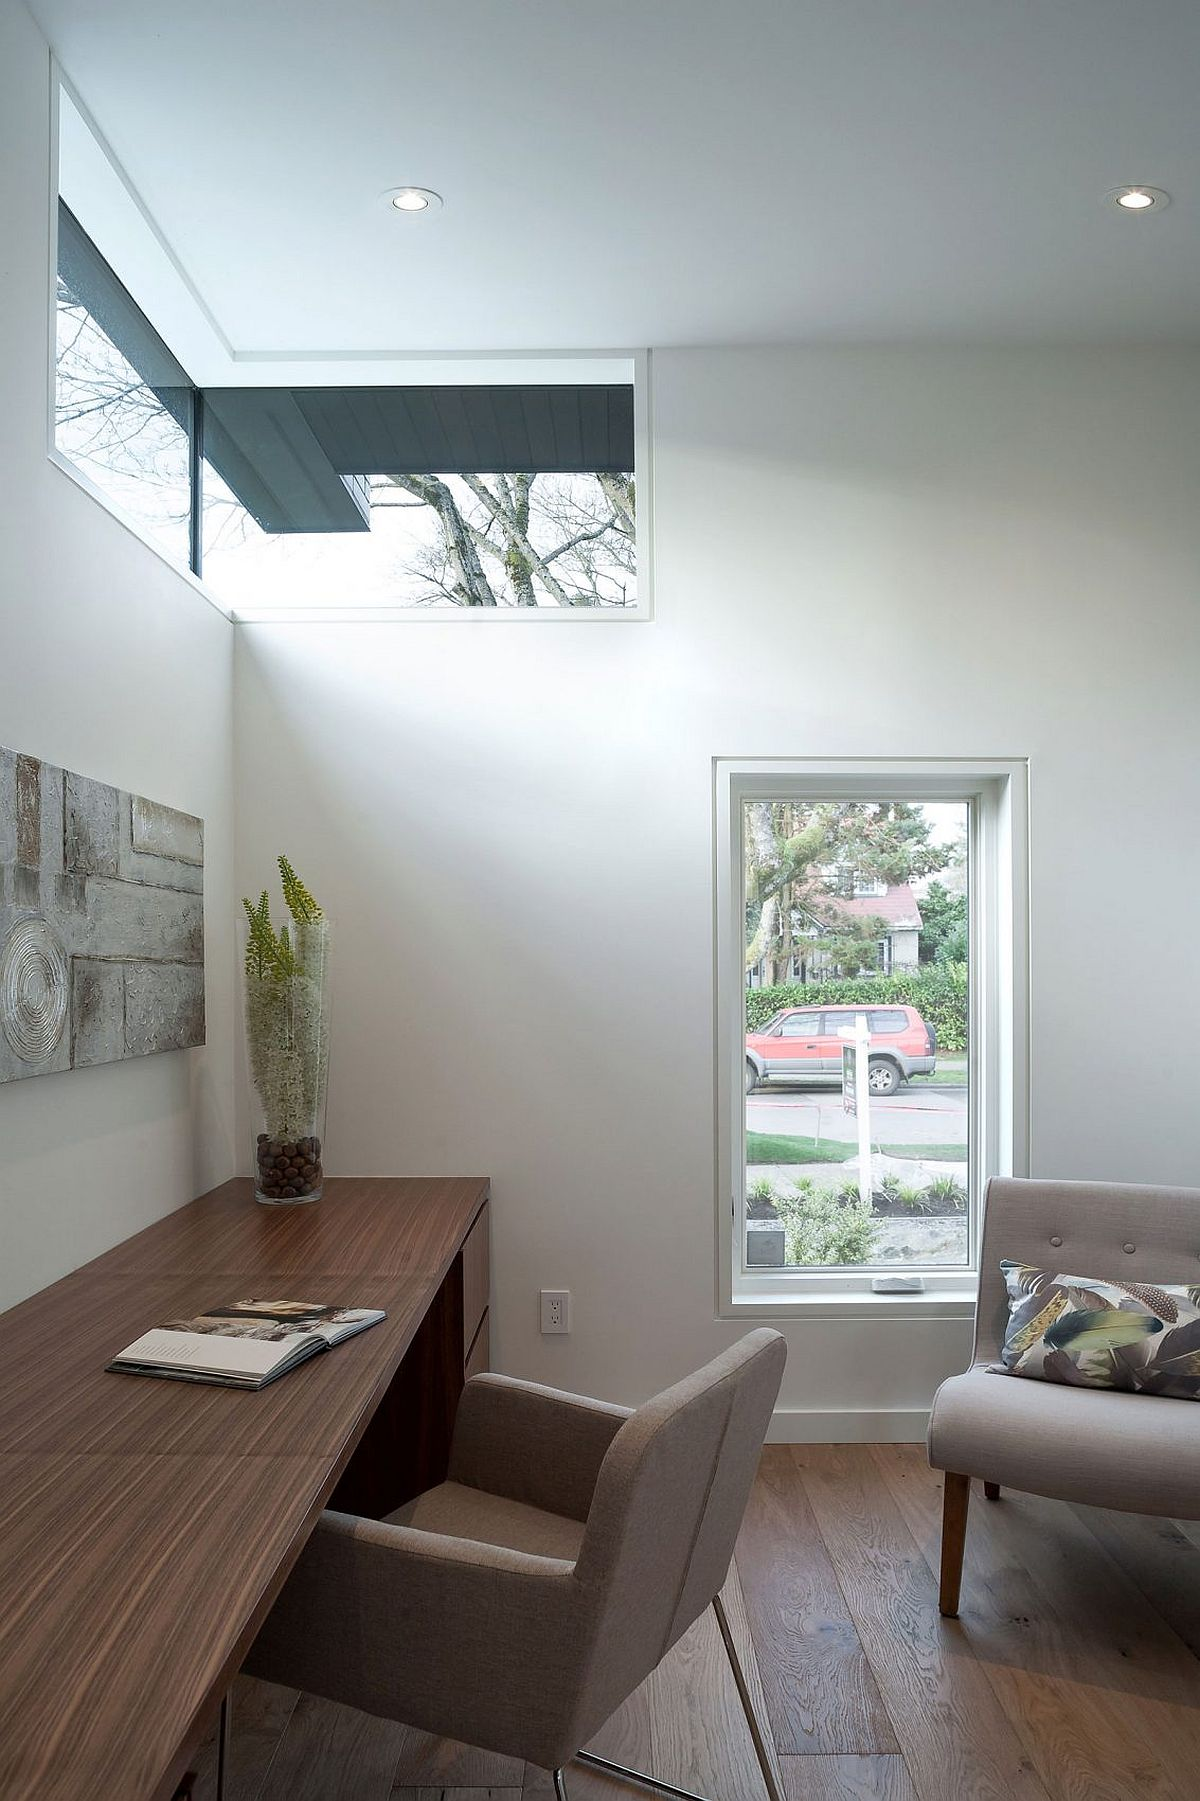 Cleverly placed corner glazed windows bring in natural light